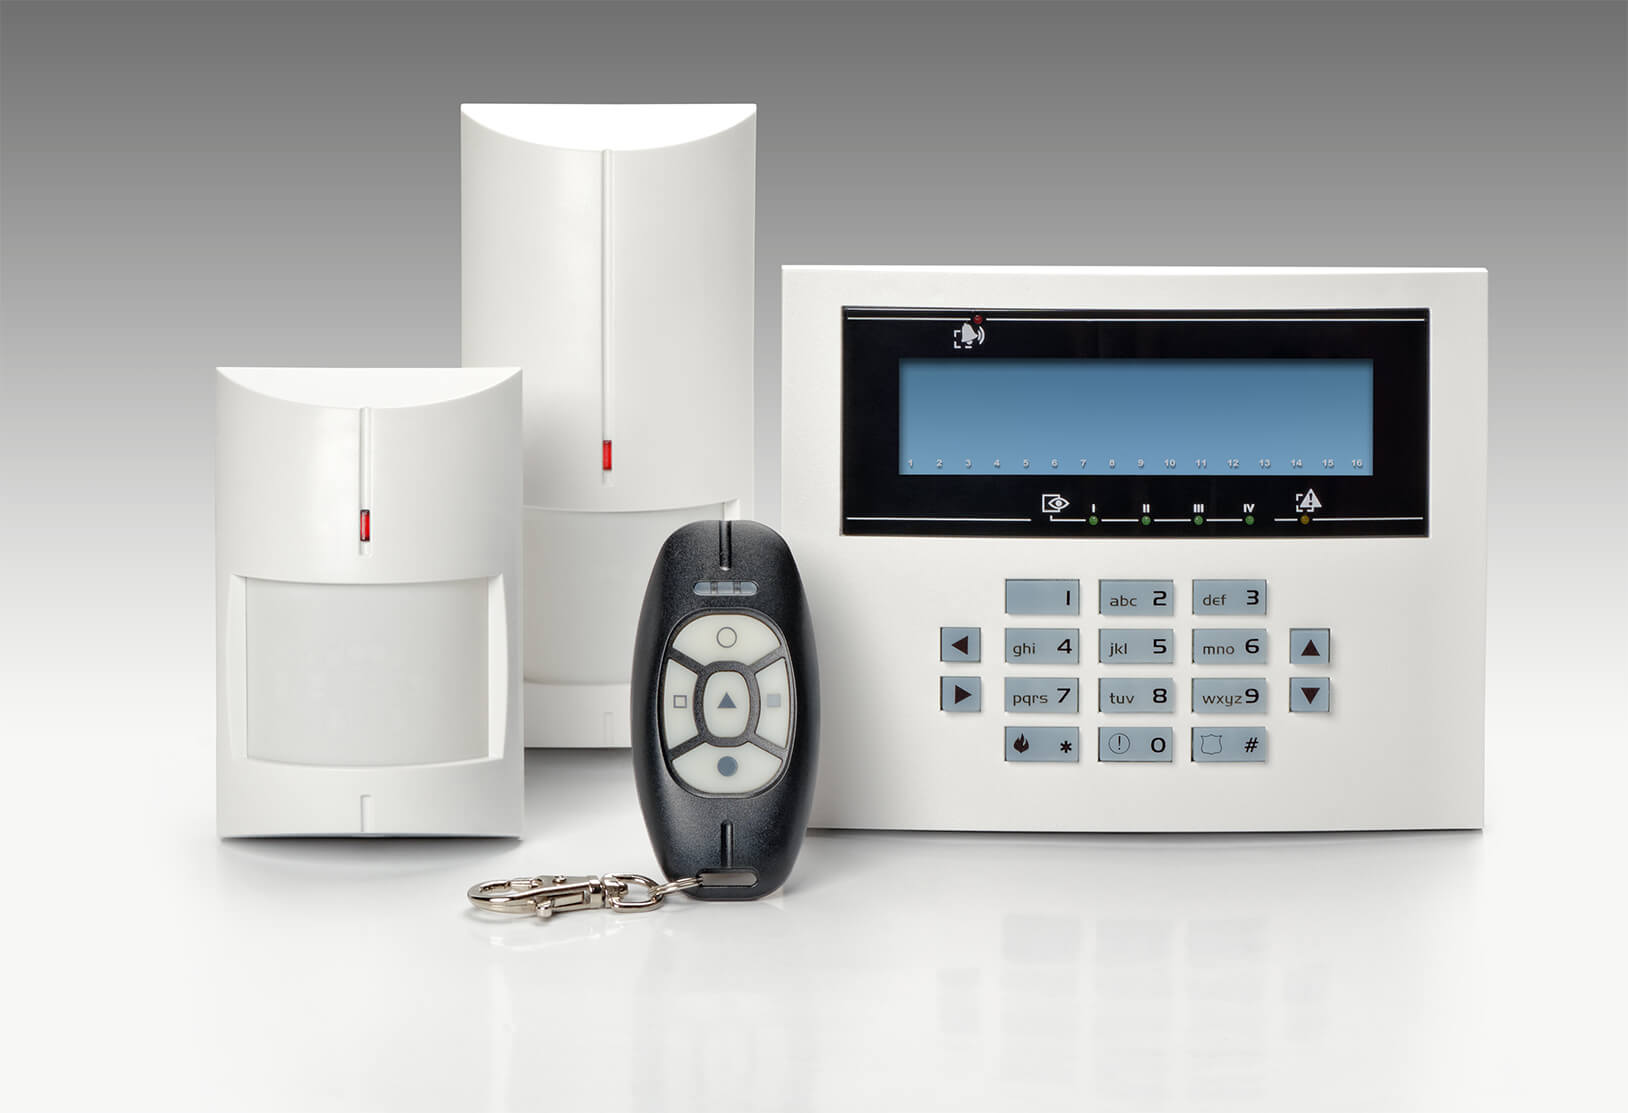 Business & Residential NSI / NACOSS Approved Burglar Alarms In Paddington W9 - Local Paddington W9 security company.Call 02078872244 - Dedicated to Safety & Security. Companies, shops and homes ..